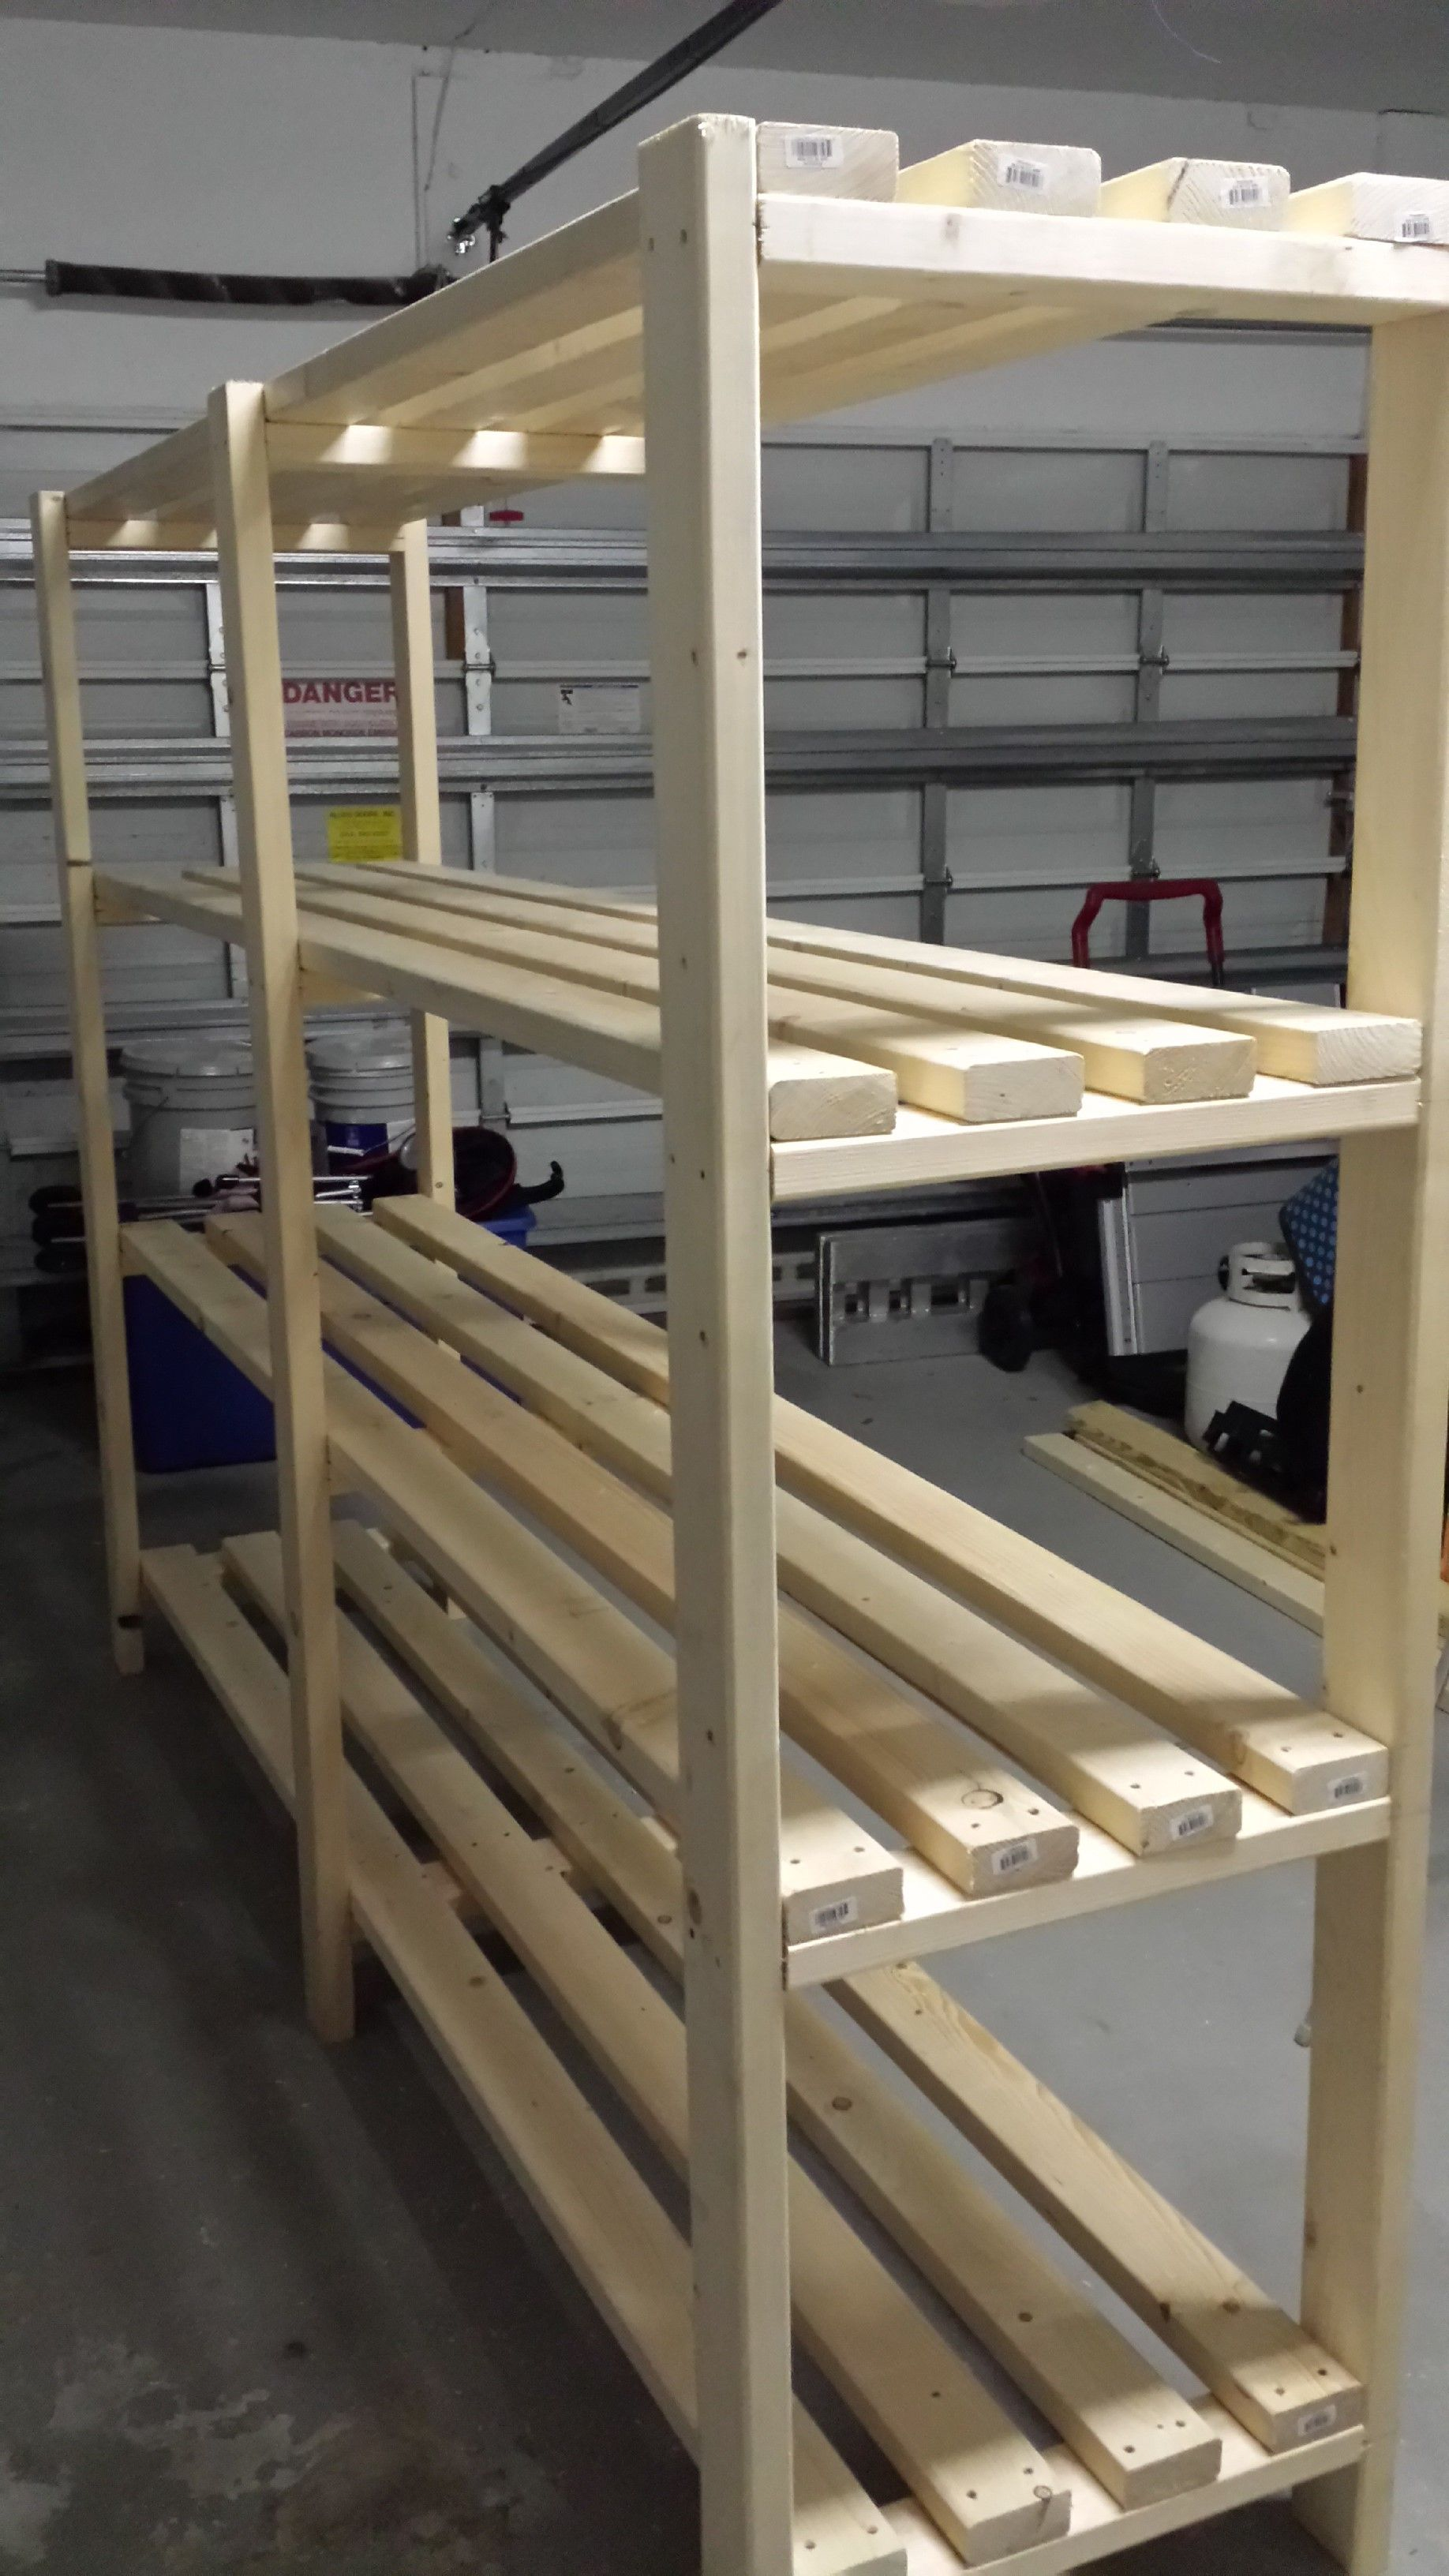 Great Plan for Garage Shelf! | Do It Yourself Home Projects from ...